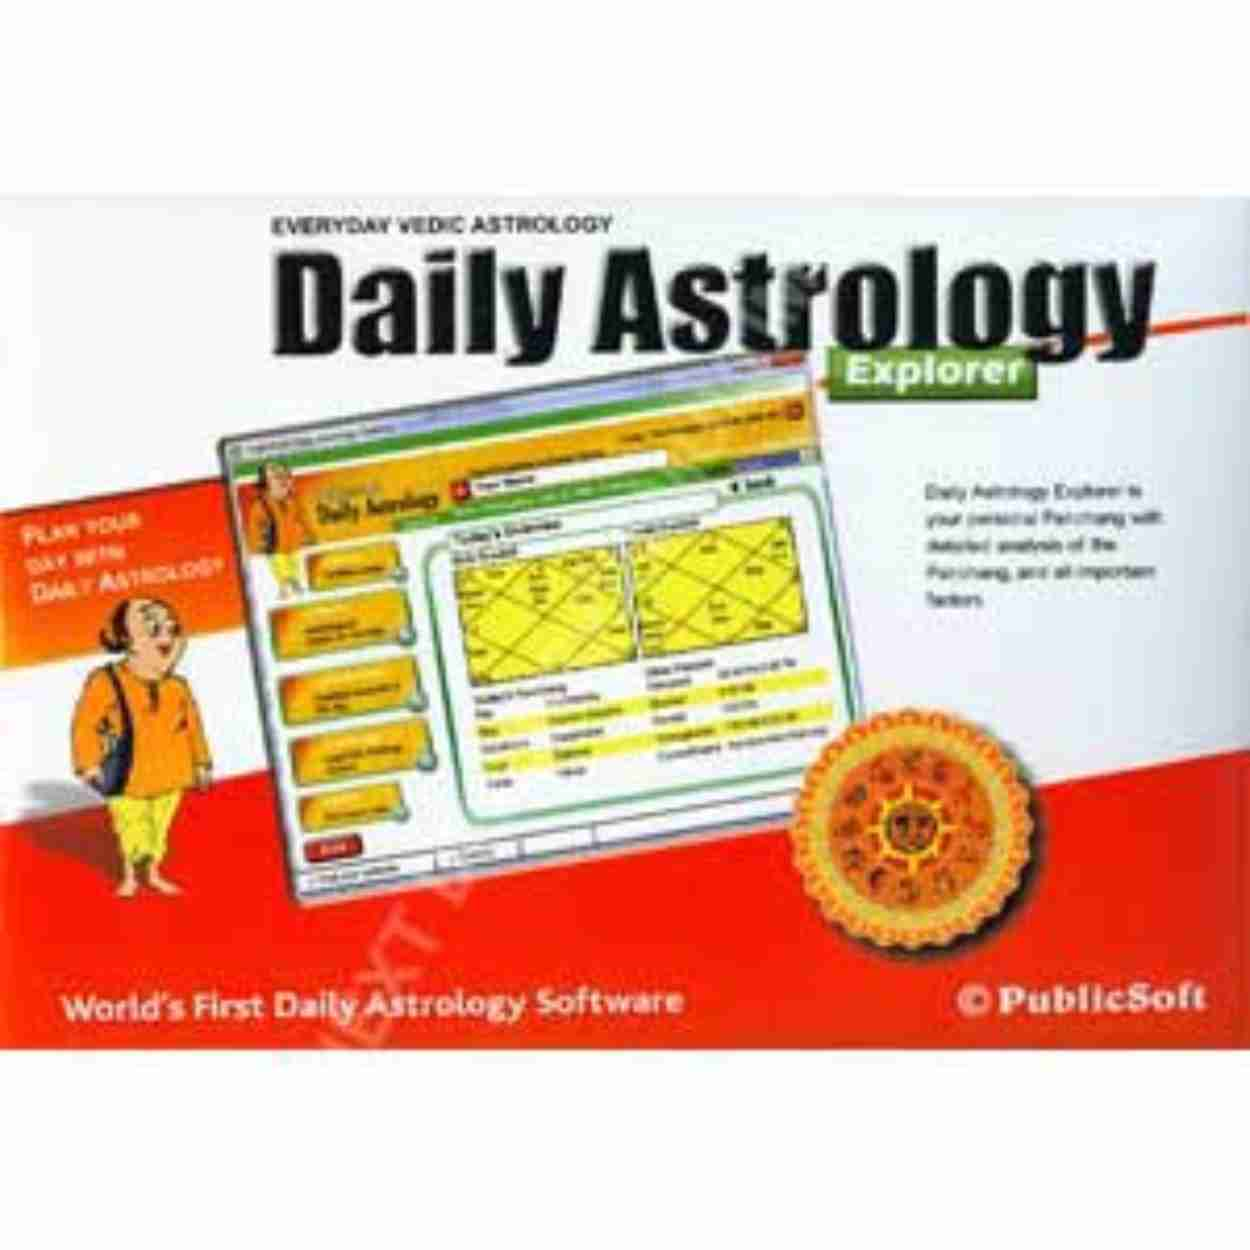 Read Daily Astrology